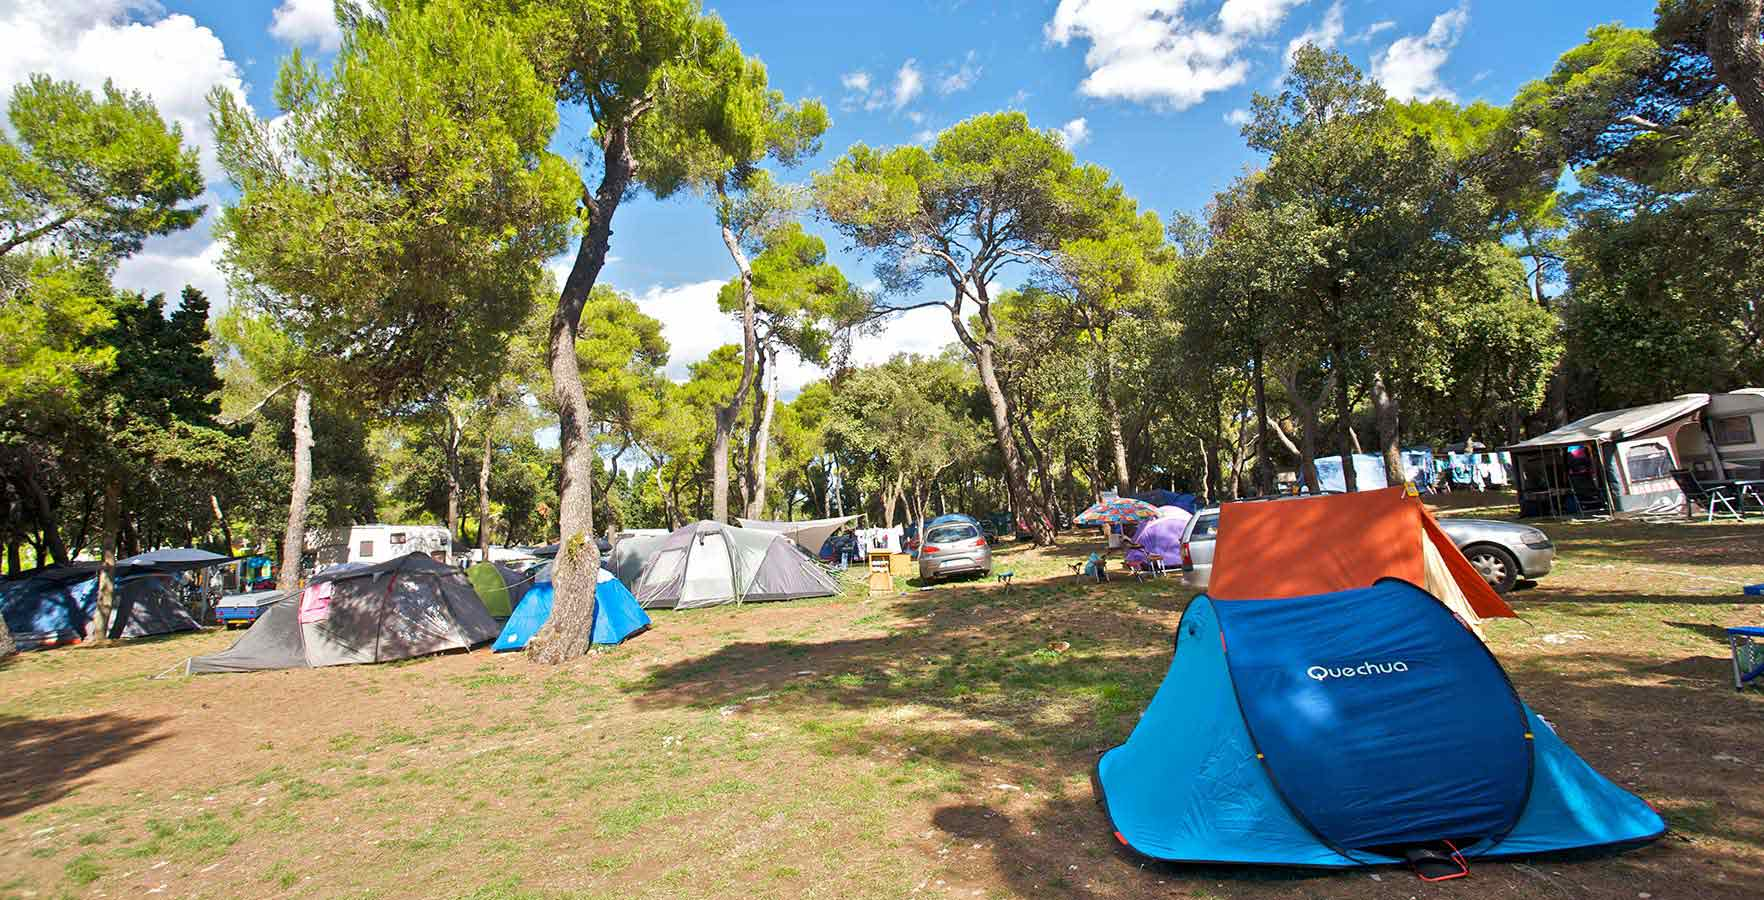 camping in the woods. Campsite Stoja - Camping In The Woods A